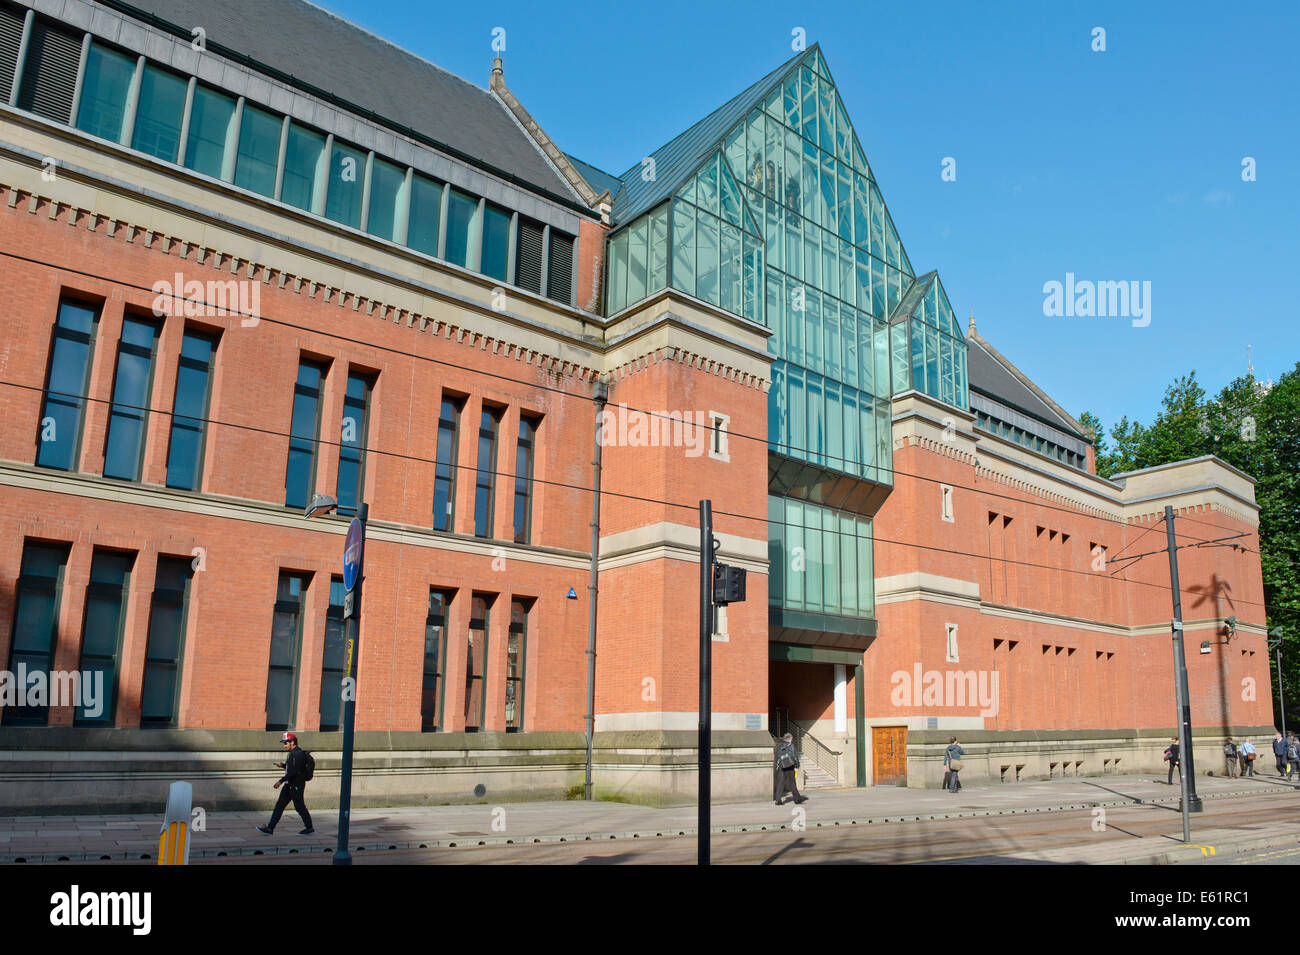 The entrance to Minshull Street Crown Court (or City Police Courts) in Manchester on a sunny day. Stock Photo